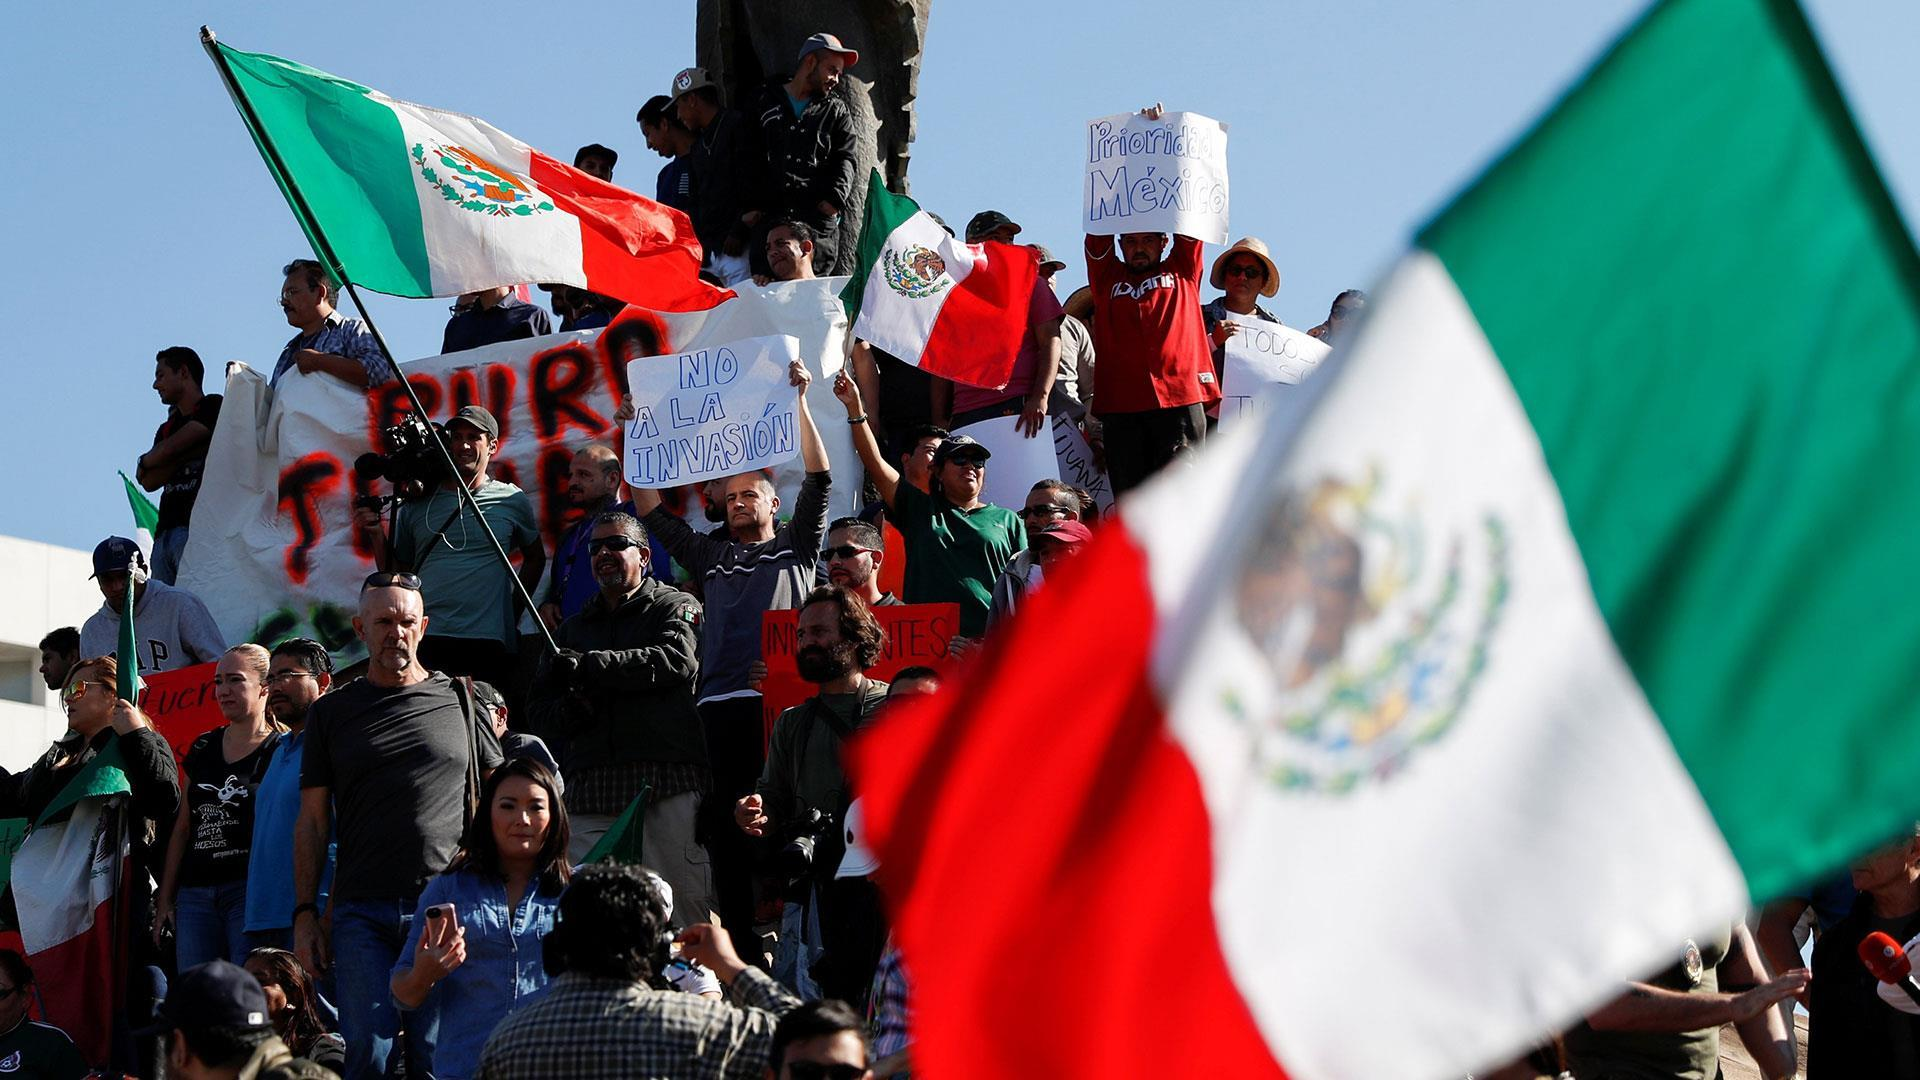 Protesters in Tijuana, Mexico, want migrant caravan to leave